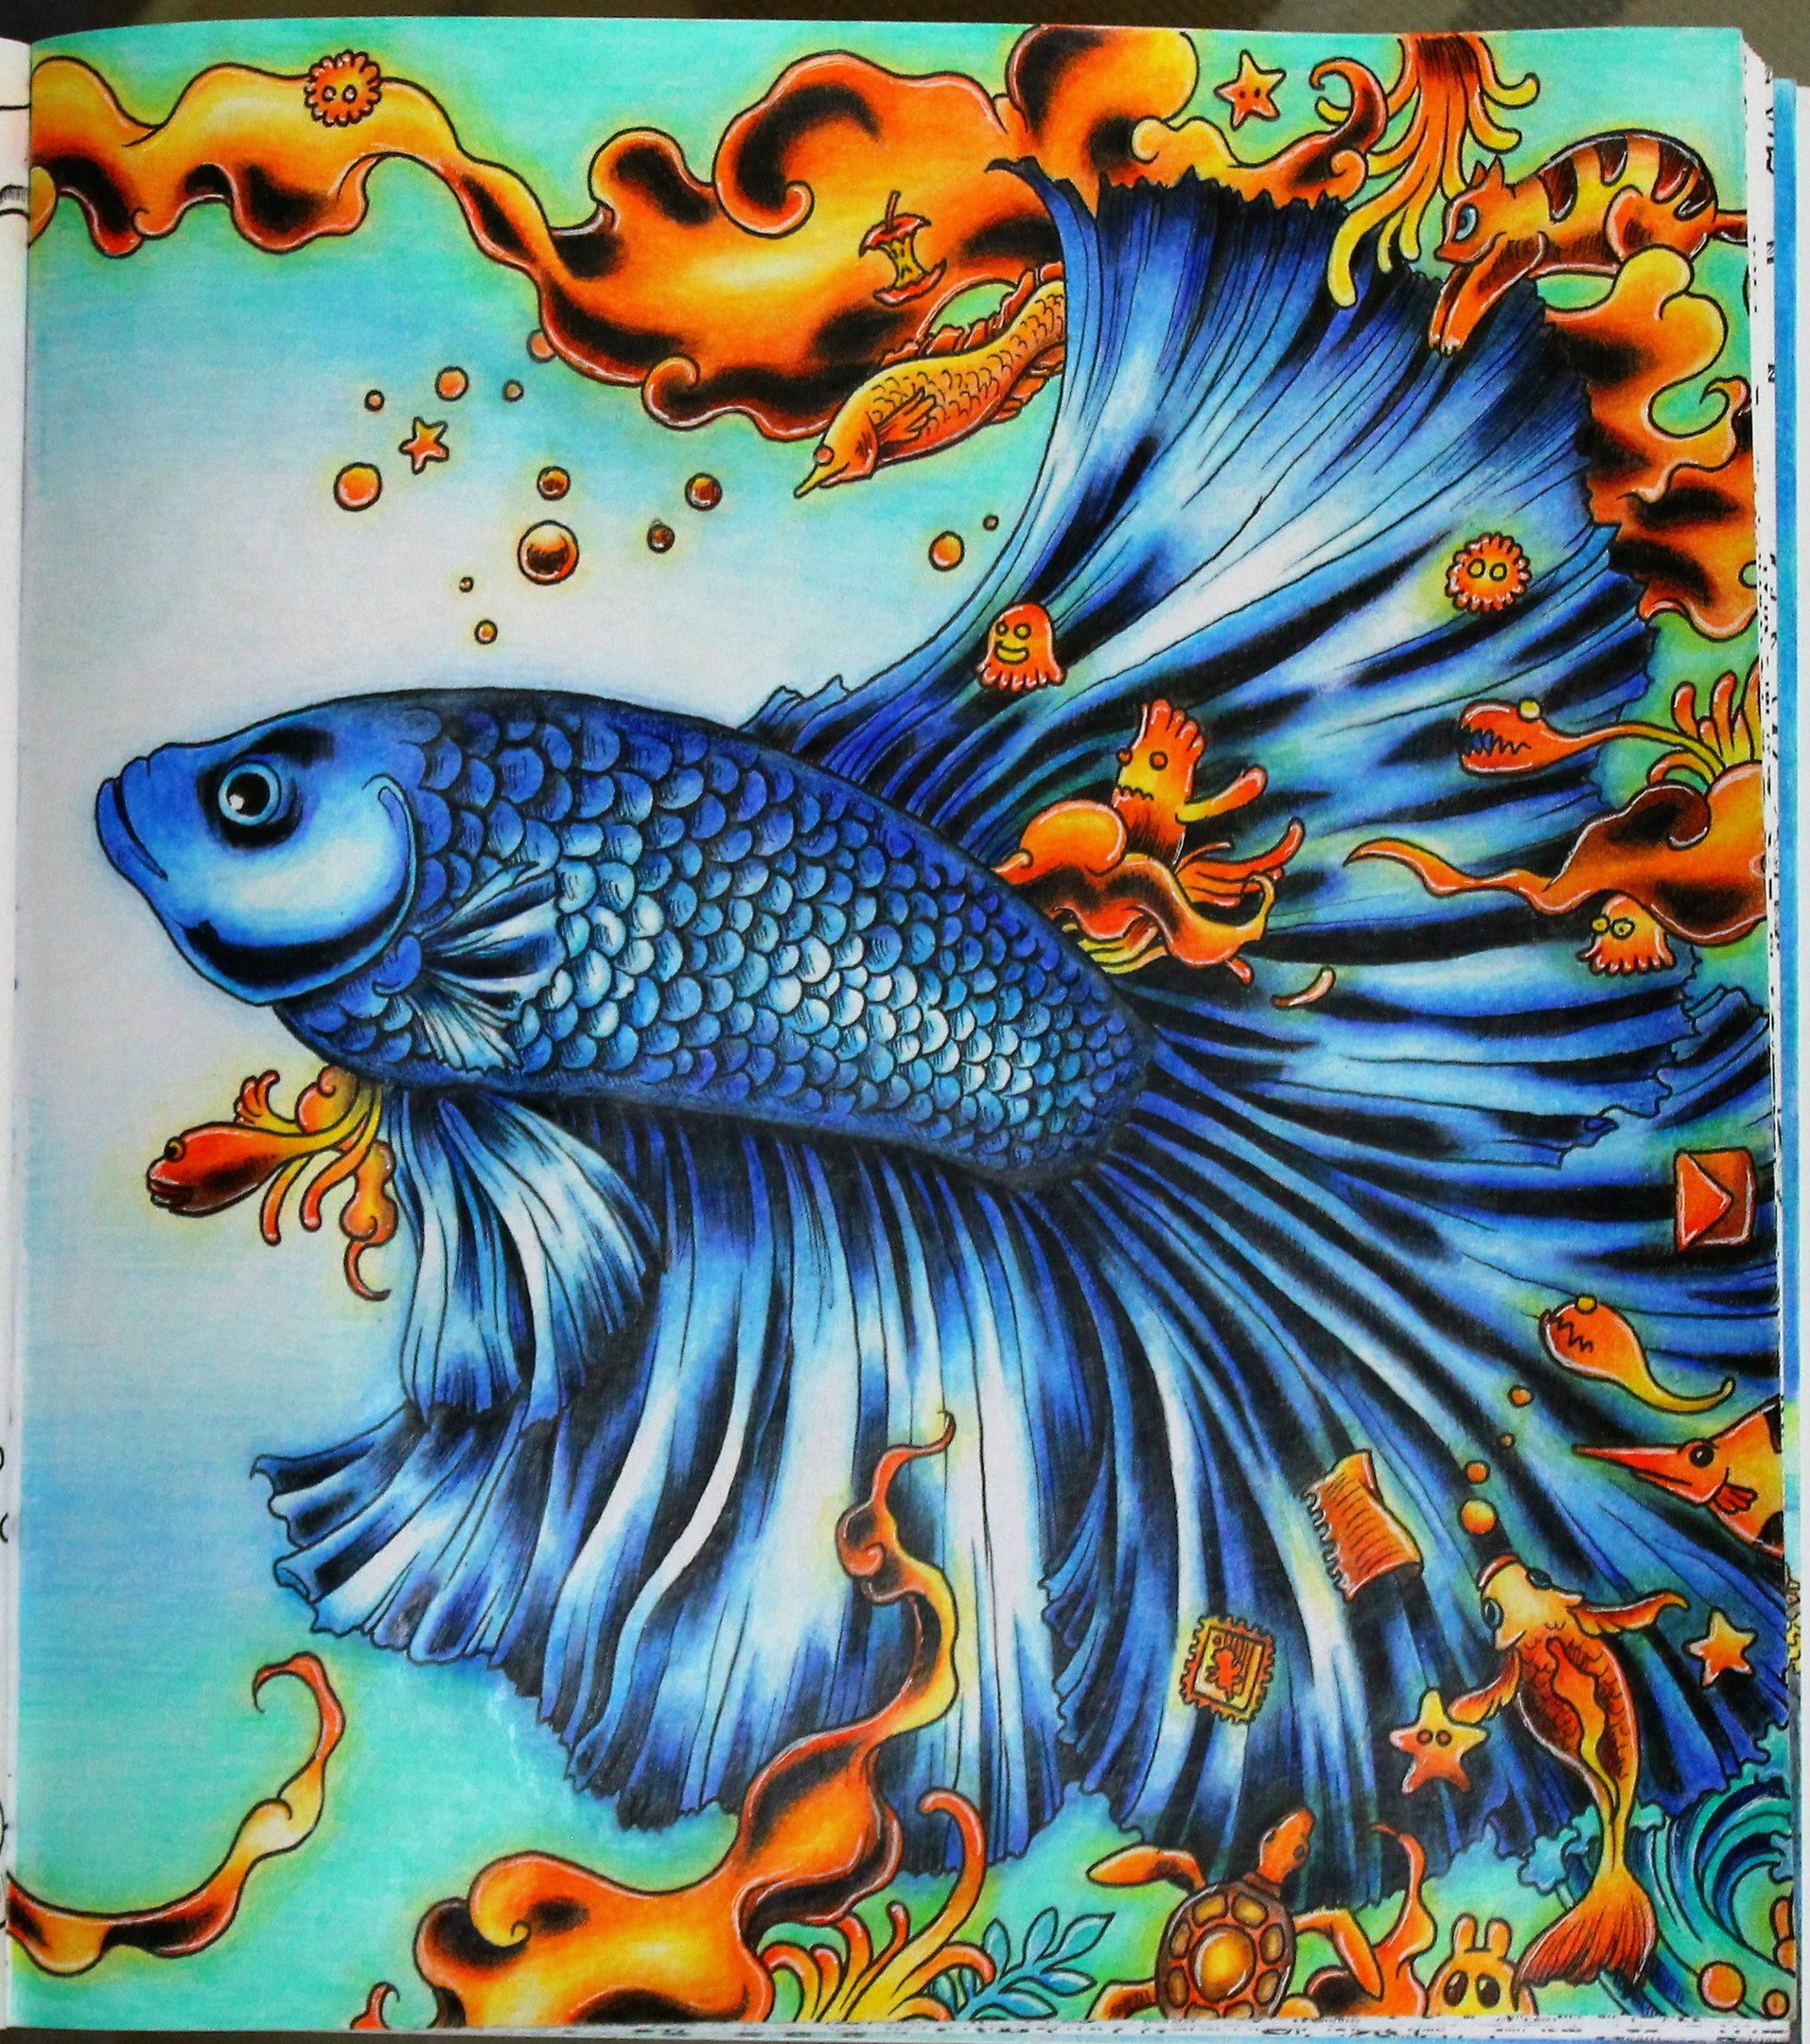 Animorphia Kerbyrosanes Giotto Art Fish Bettasplendens Coloring Coloringbook